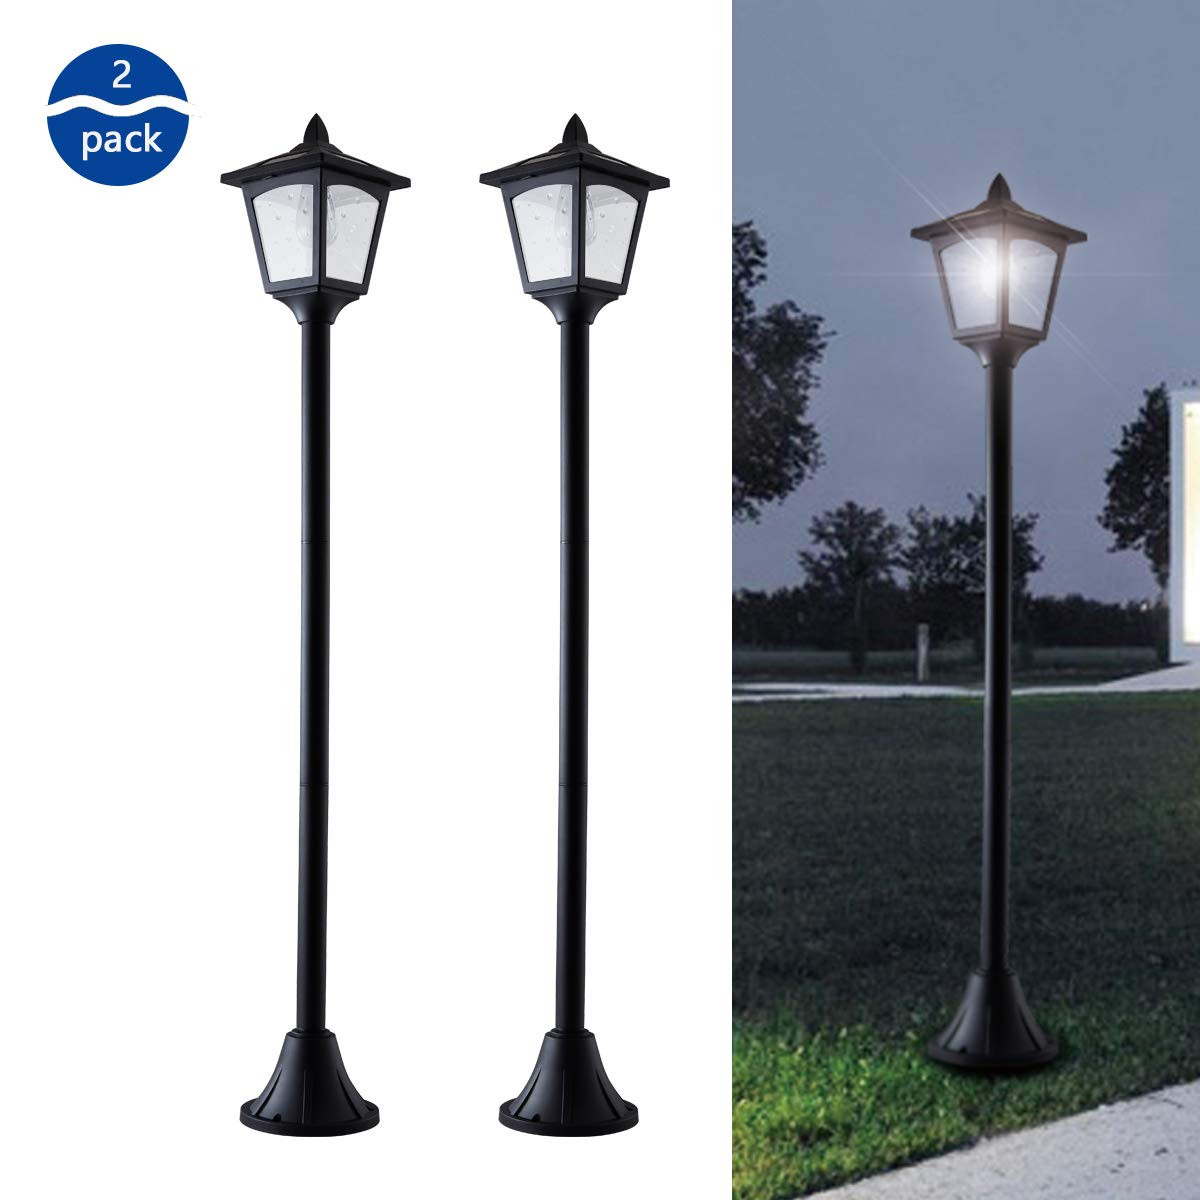 42 Inches Mini Street Post Outdoor Garden Solar Lamp Post Light Lawn - Adjustable (2 Pack) by Solar Smart Creations